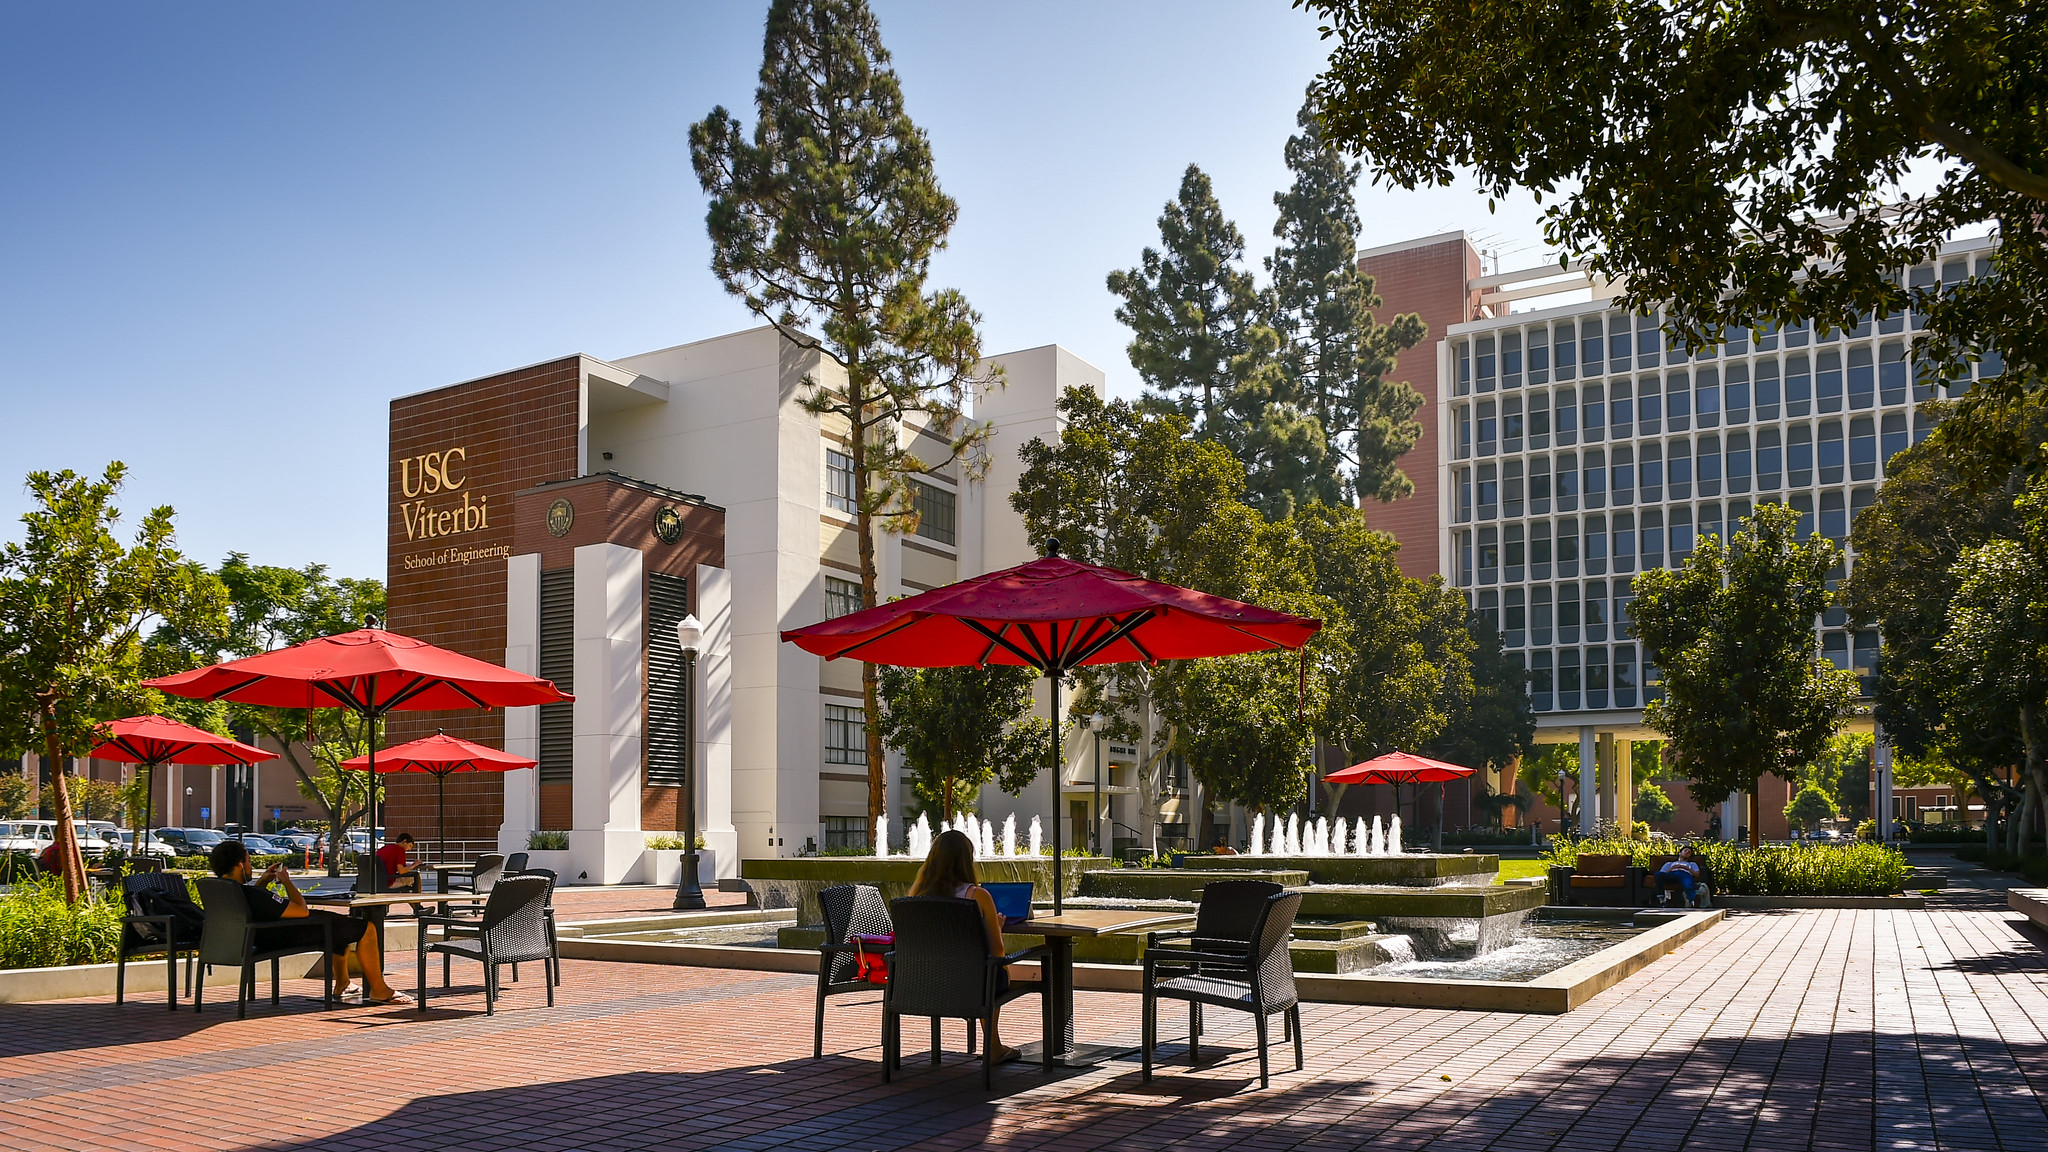 Archimedes Plaza on USC campus